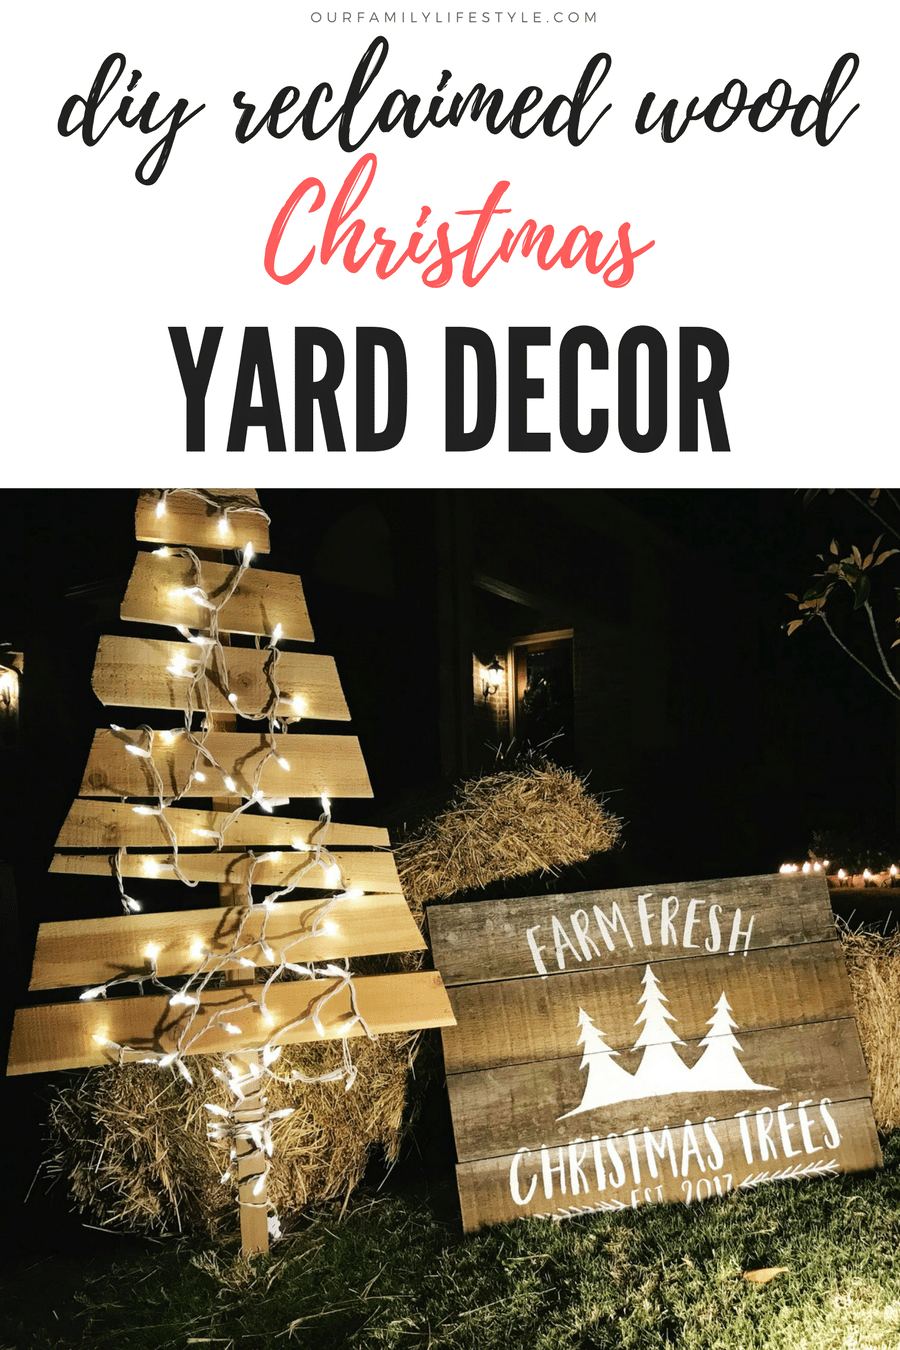 DIY Reclaimed Wood Christmas Yard Decor